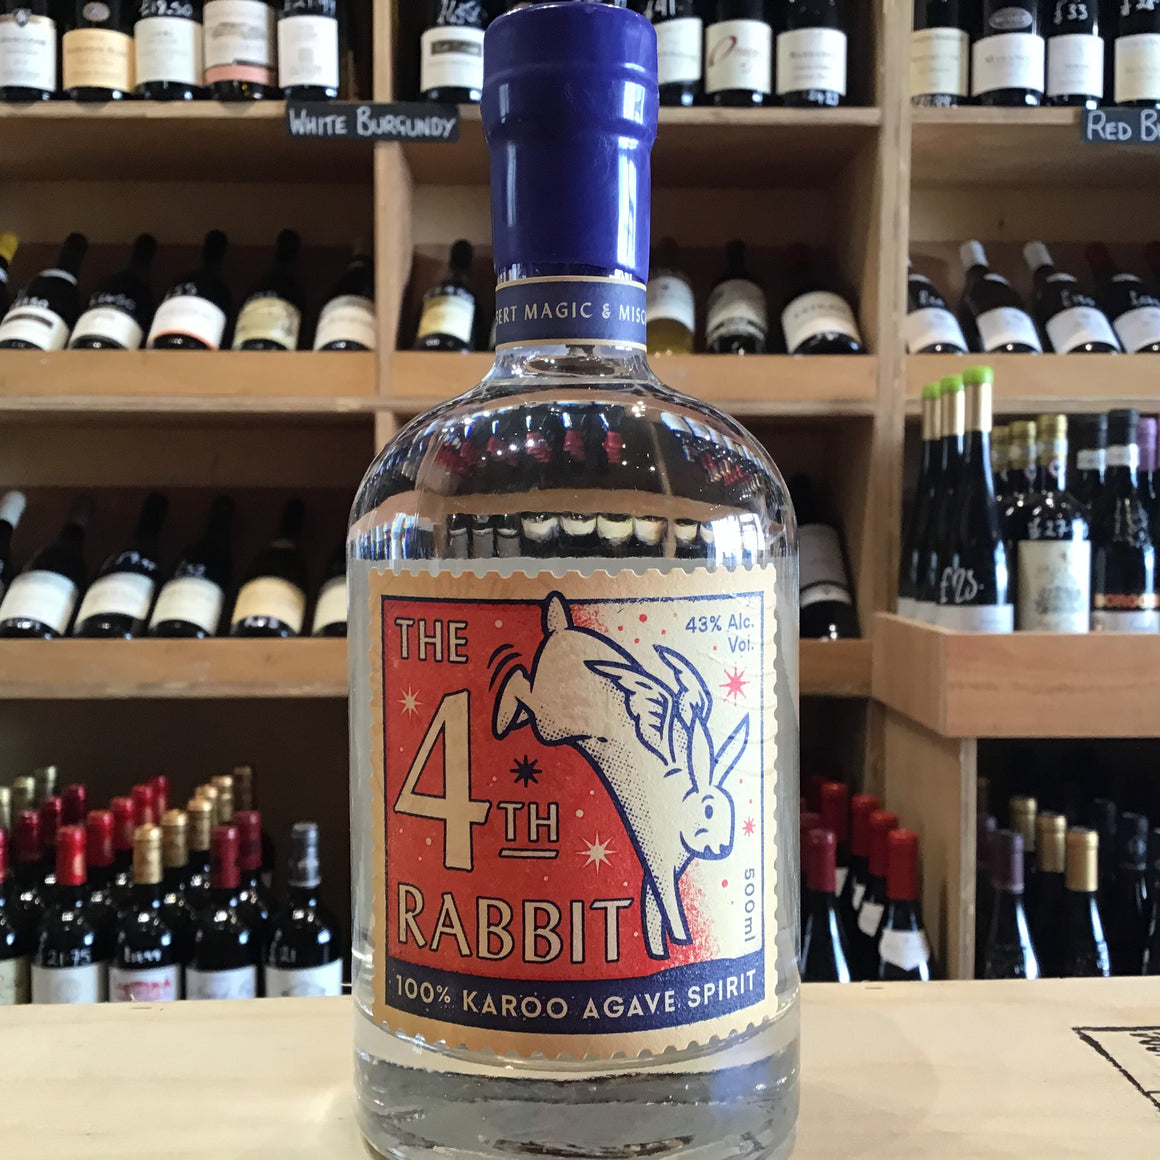 AA Badenhorst 4th Rabbit Mezcal 50cl - Butlers Wine Cellar Brighton